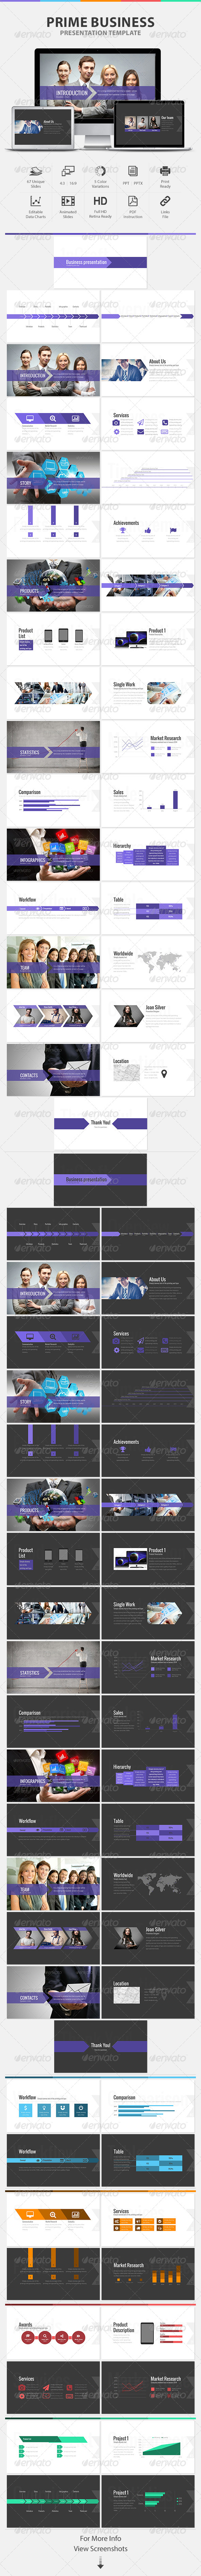 GraphicRiver Prime Business Presentation Powerpoint Template 7846399